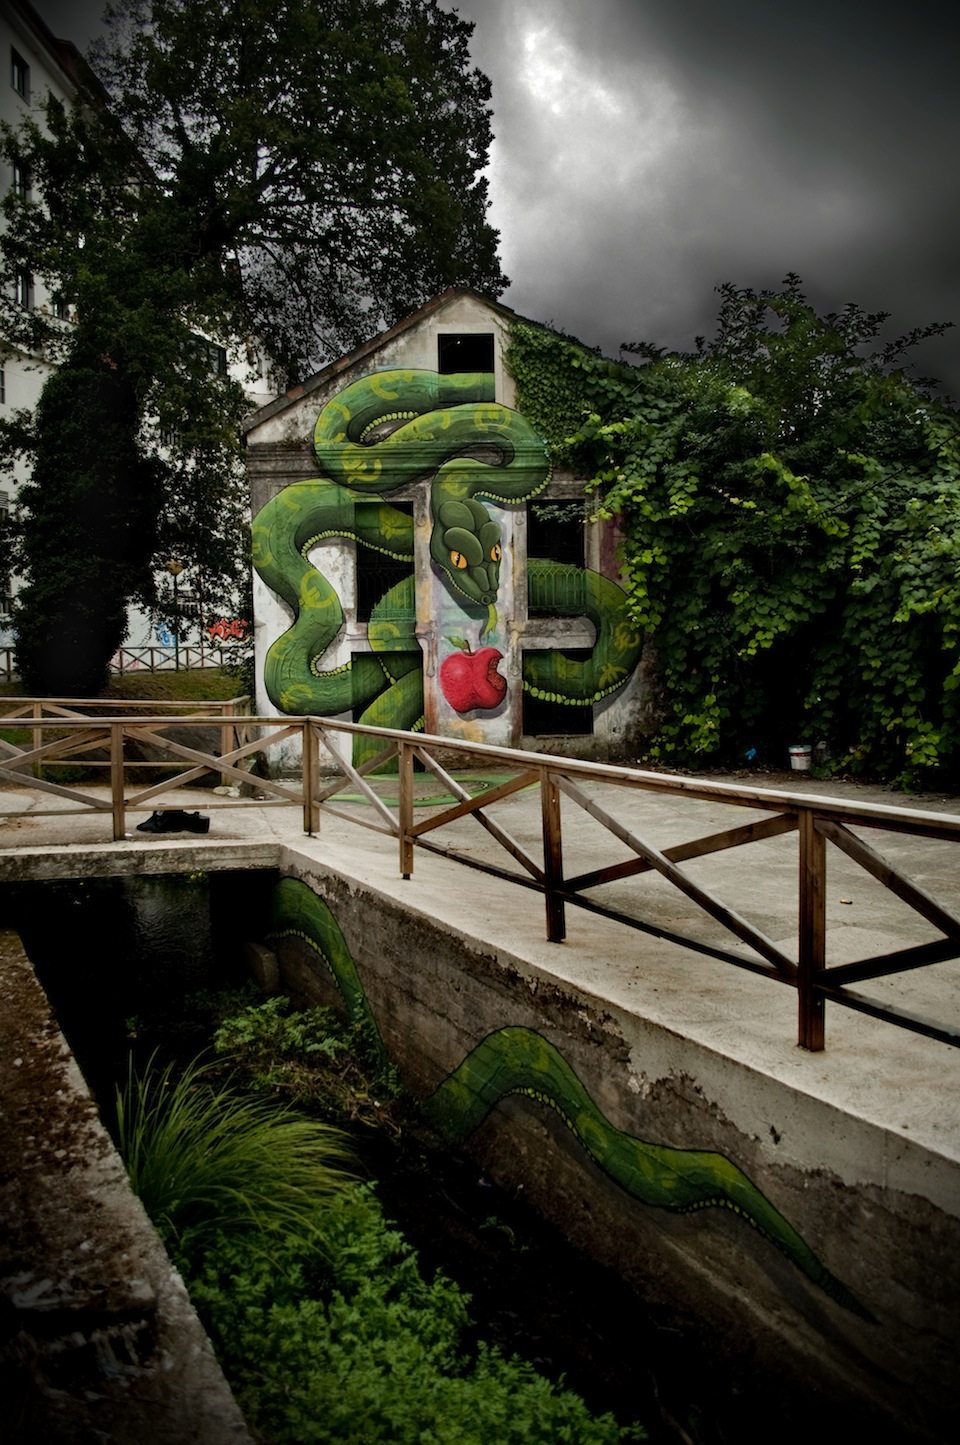 By SOKRAM. At DESORDES CREATIVAS 2012 in Ordes, Galiza, Spain 5